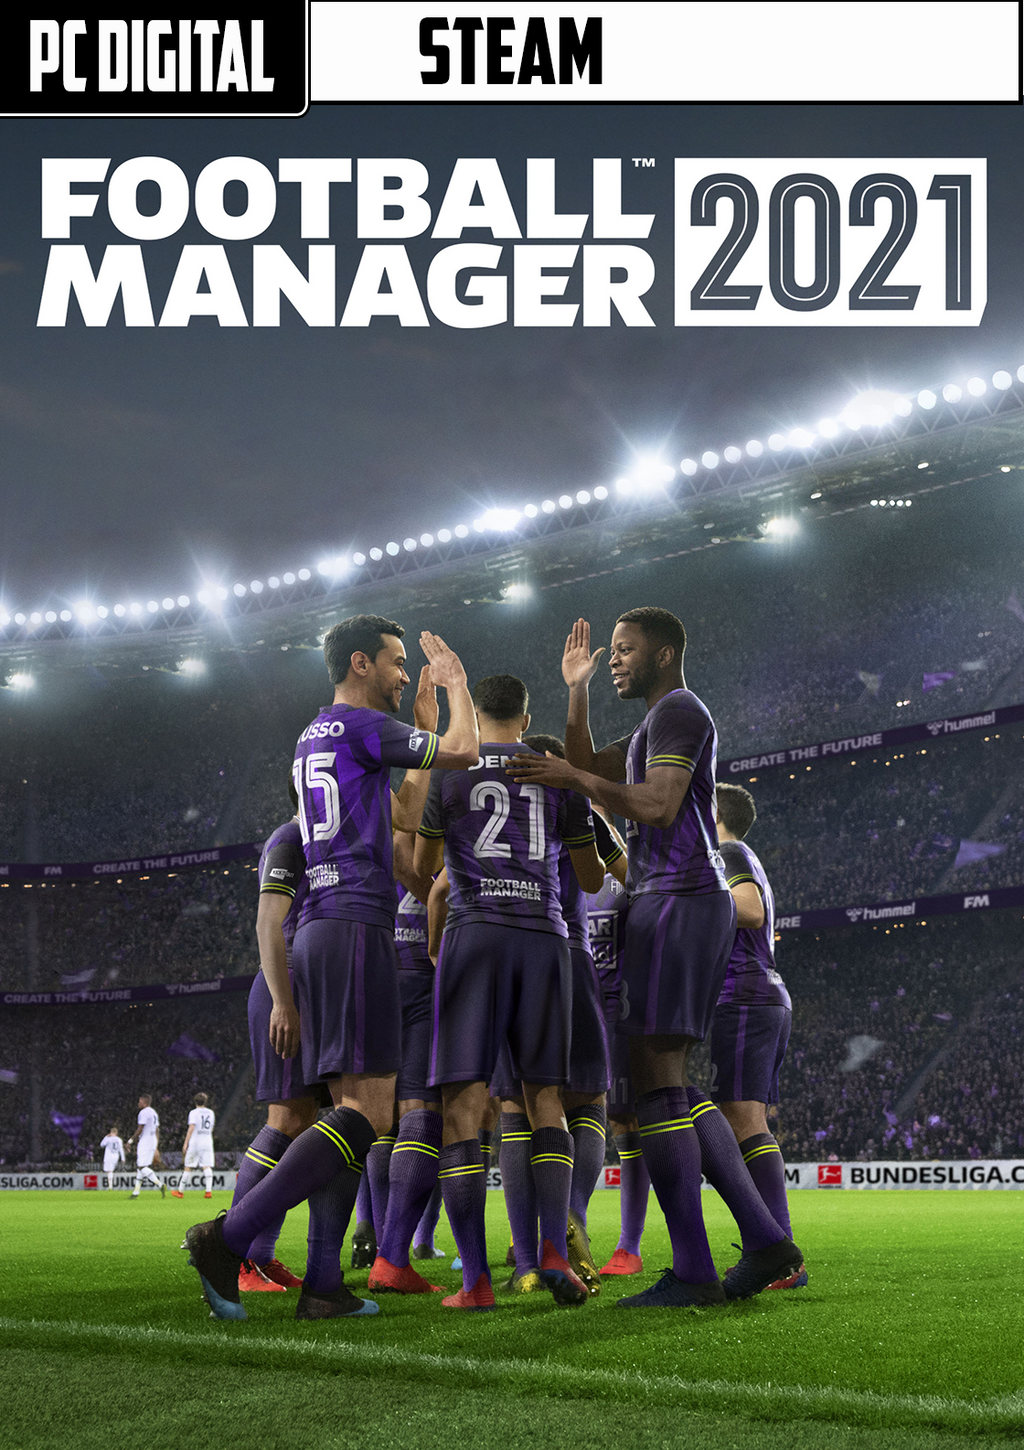 Football Manager 2021 - Steam Key